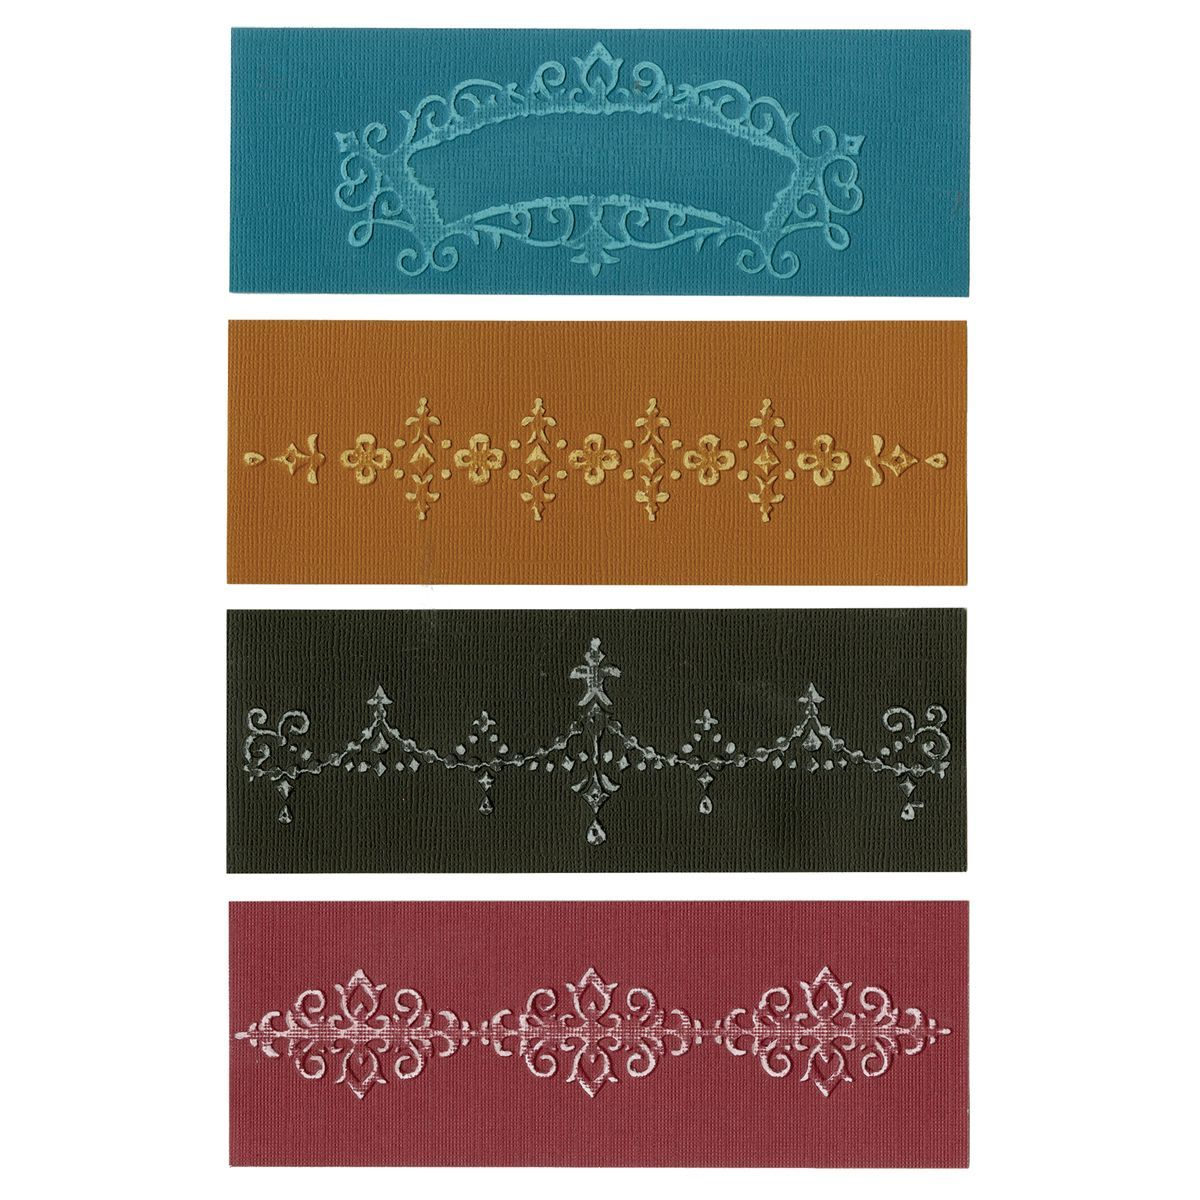 Sizzix-Textured Impressions A6 Embossing Folders. Embossing your sentiments and images lends your creative impulses a little added advantage- you achieve the look of a professional paper craft designe